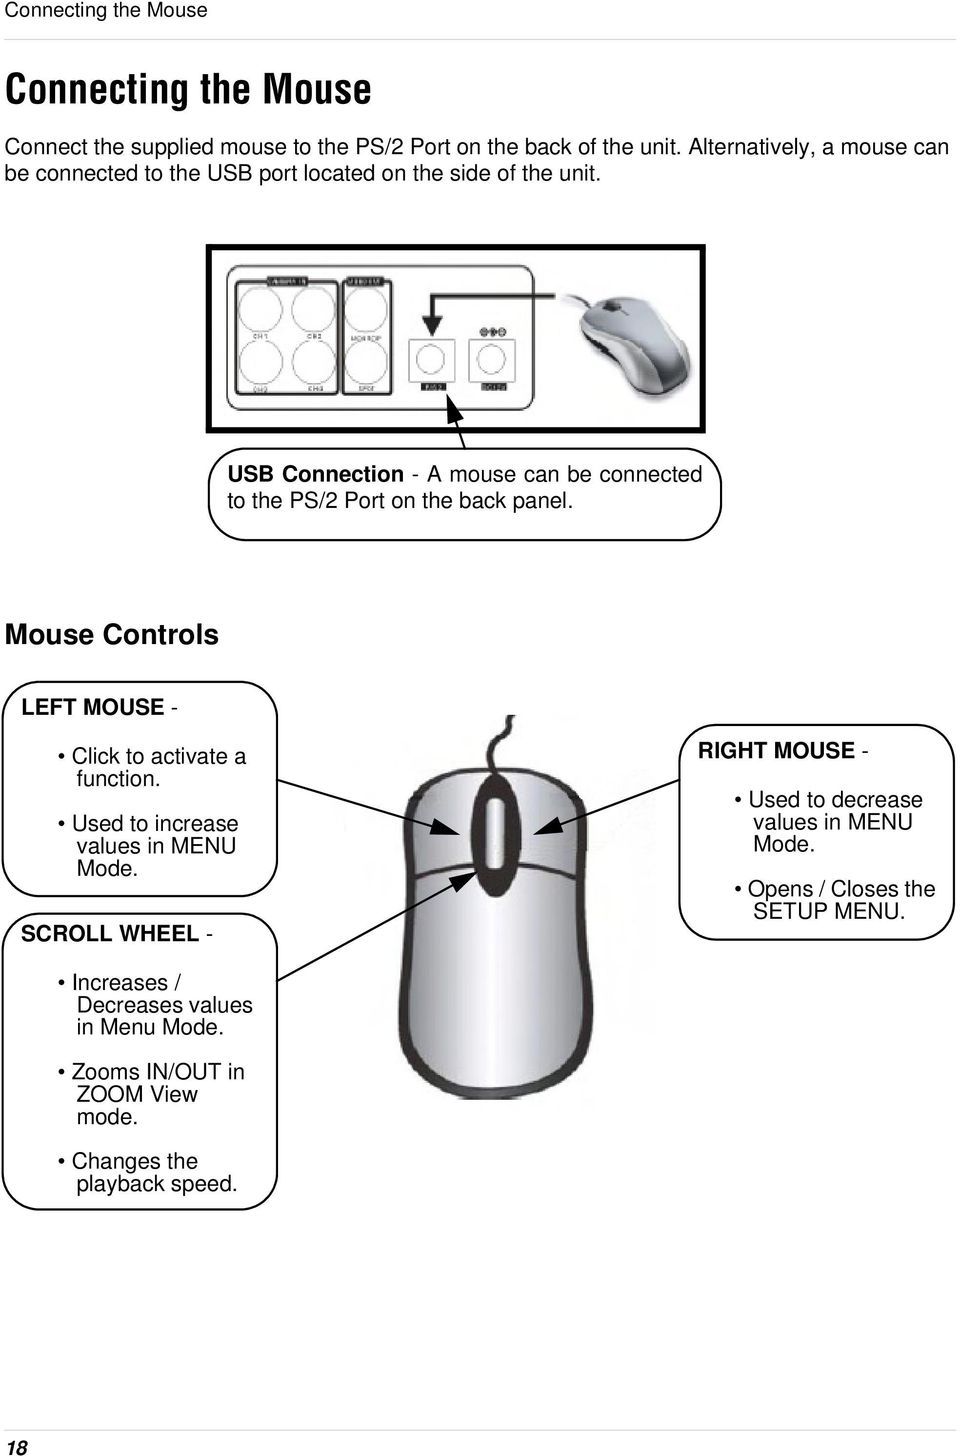 USB Connection - A mouse can be connected to the PS/2 Port on the back panel. Mouse Controls LEFT MOUSE - Click to activate a function.